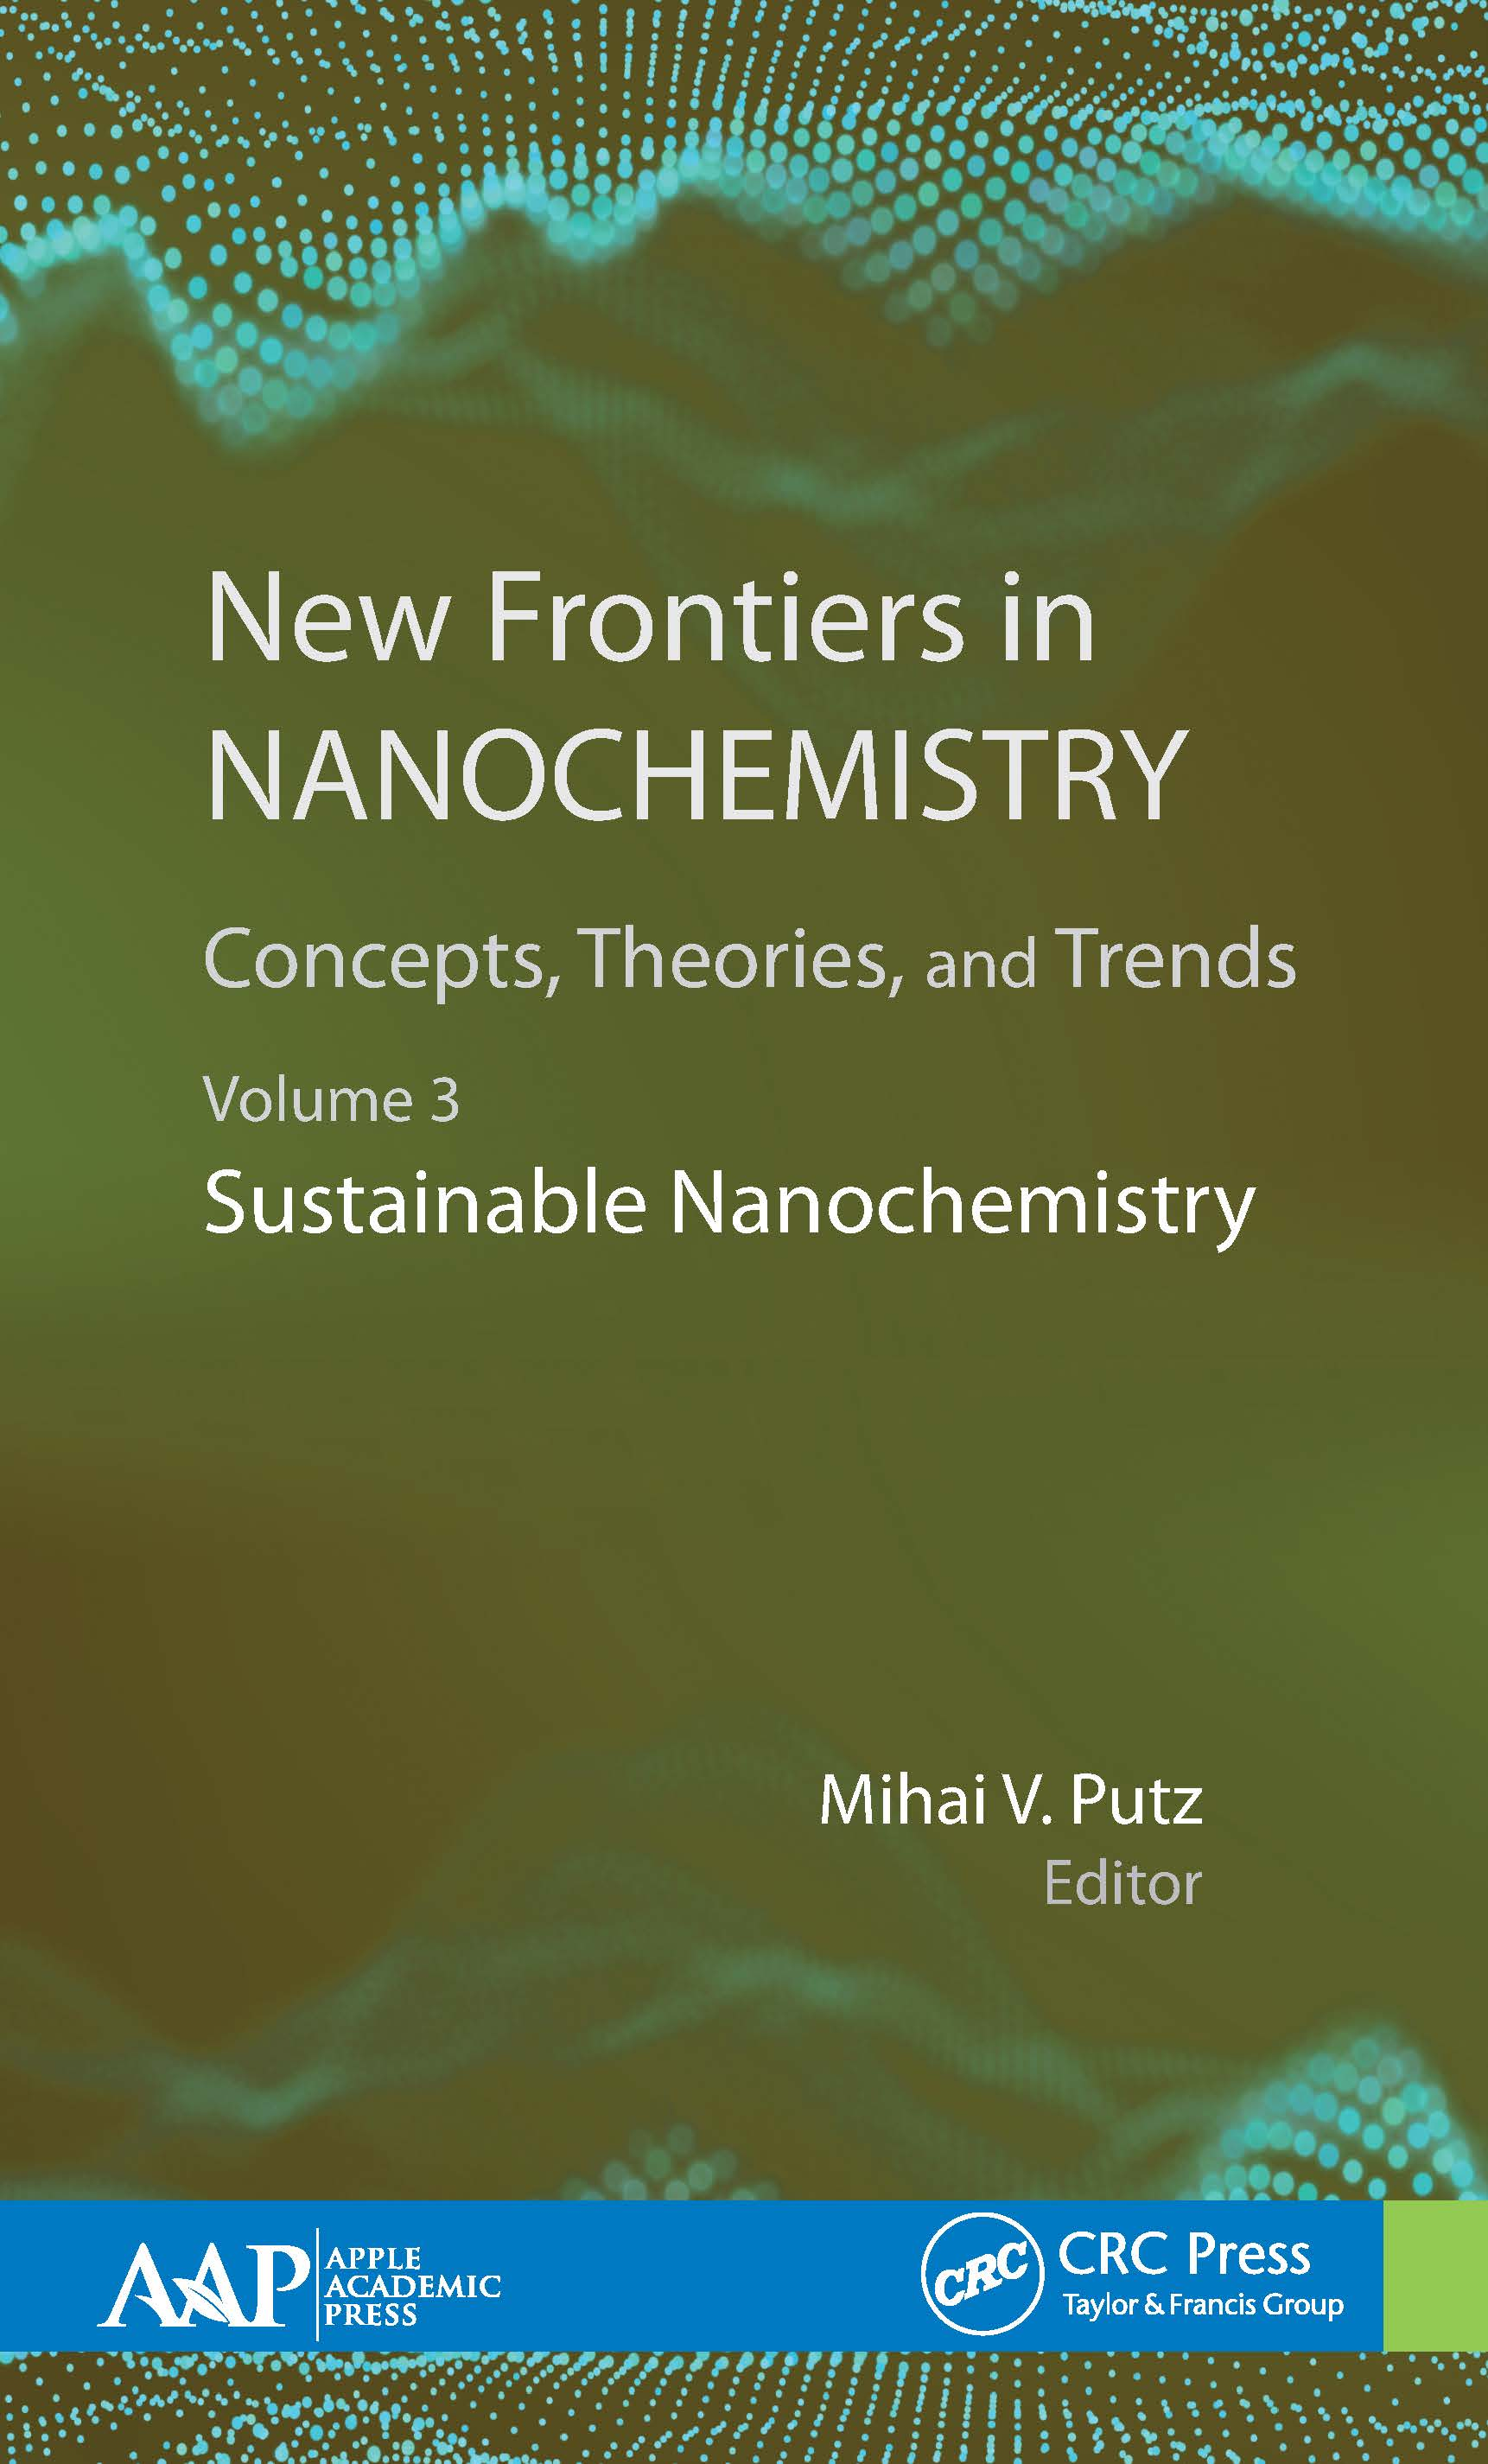 New Frontiers in Nanochemistry: Concepts, Theories, and Trends: Volume 3: Sustainable Nanochemistry book cover